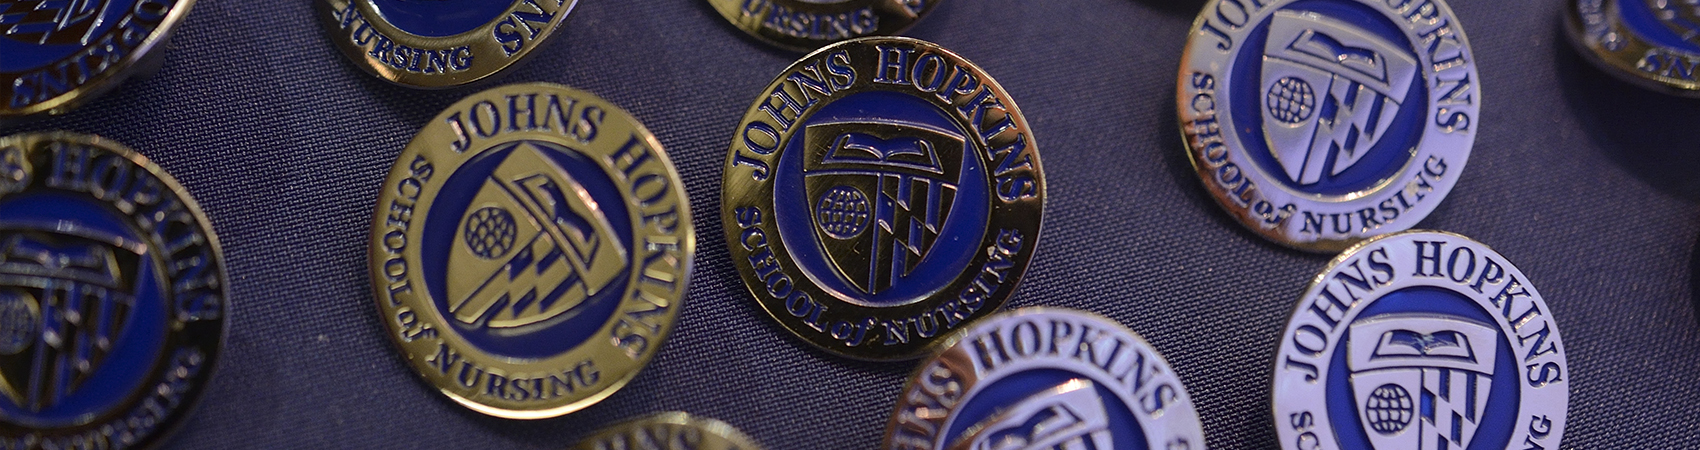 About Us - School of Nursing at Johns Hopkins University